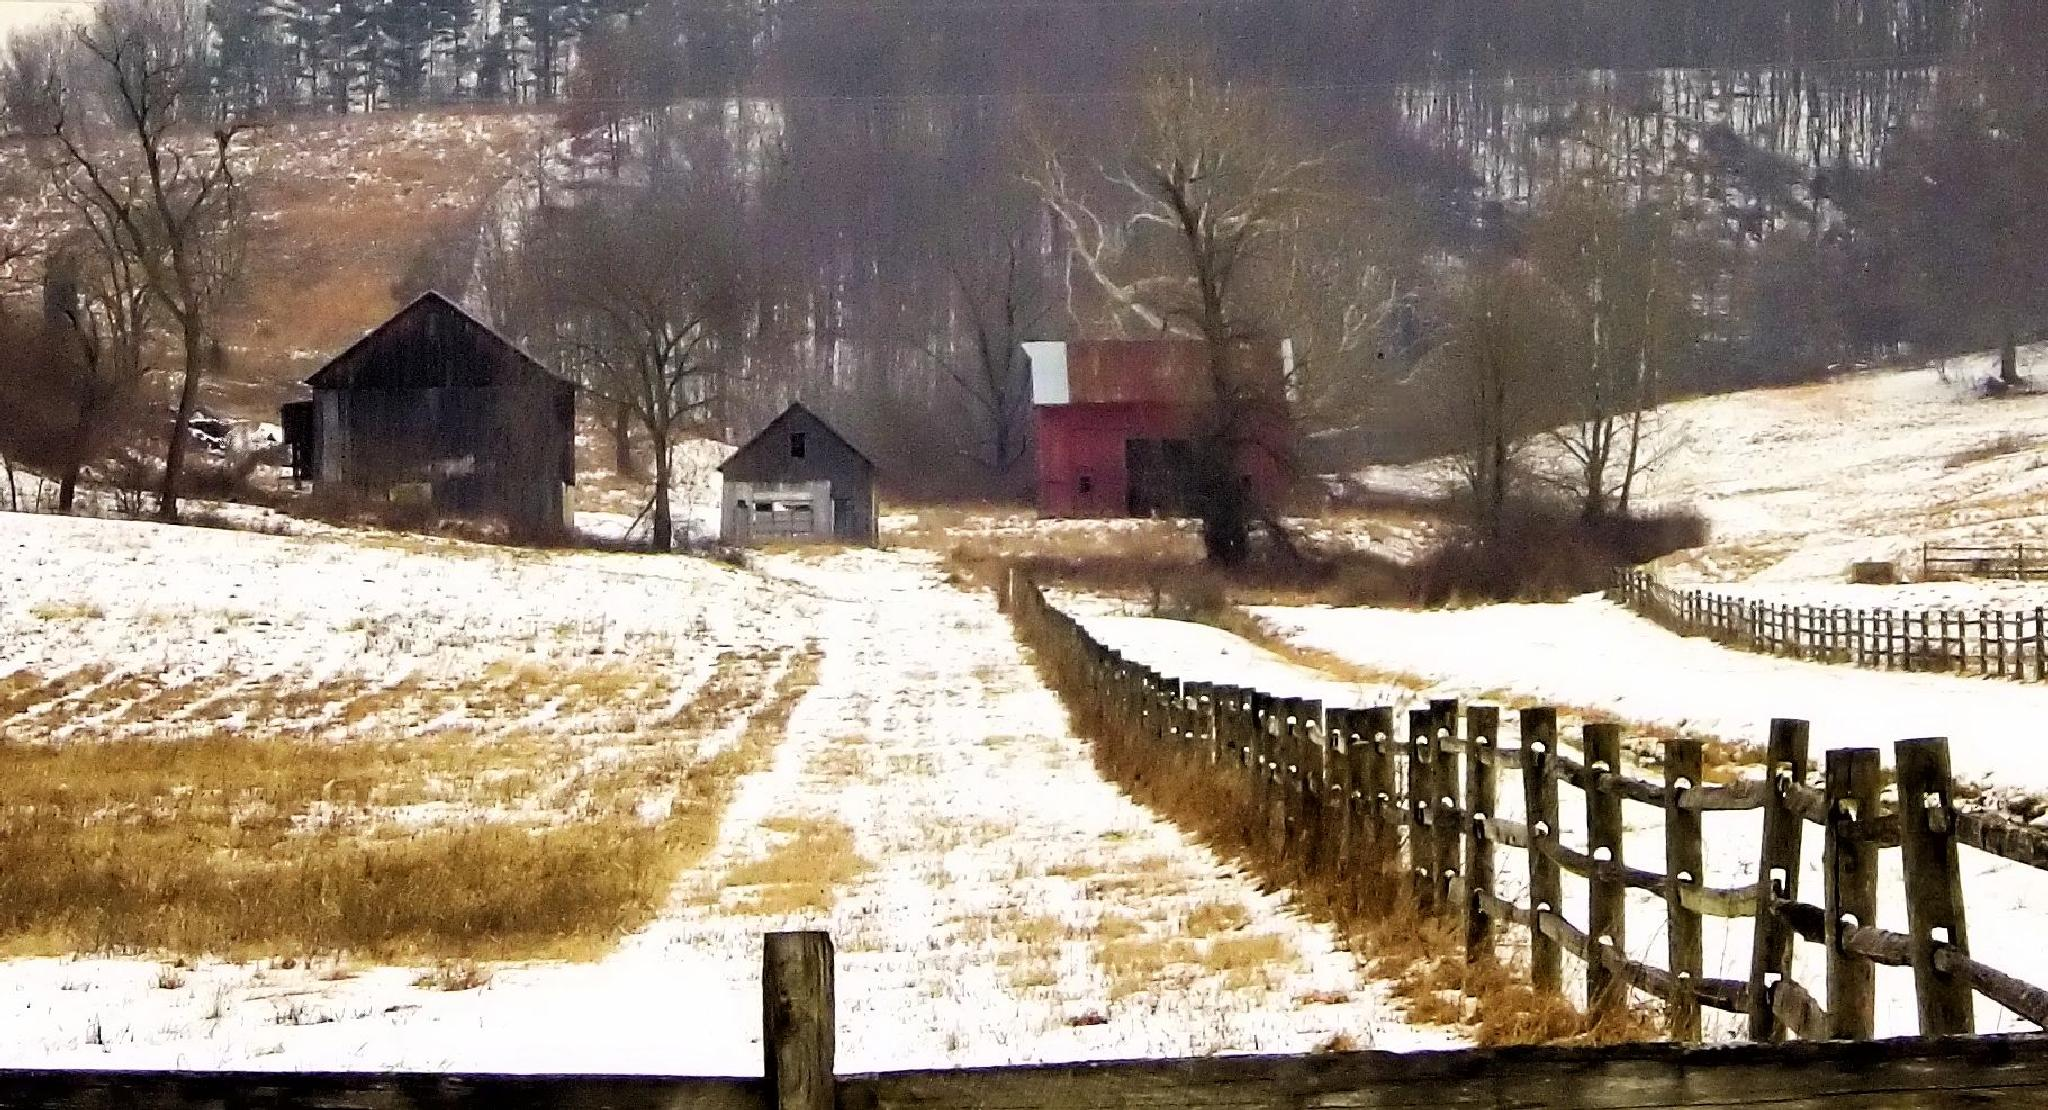 Winter on the farm by Kathy